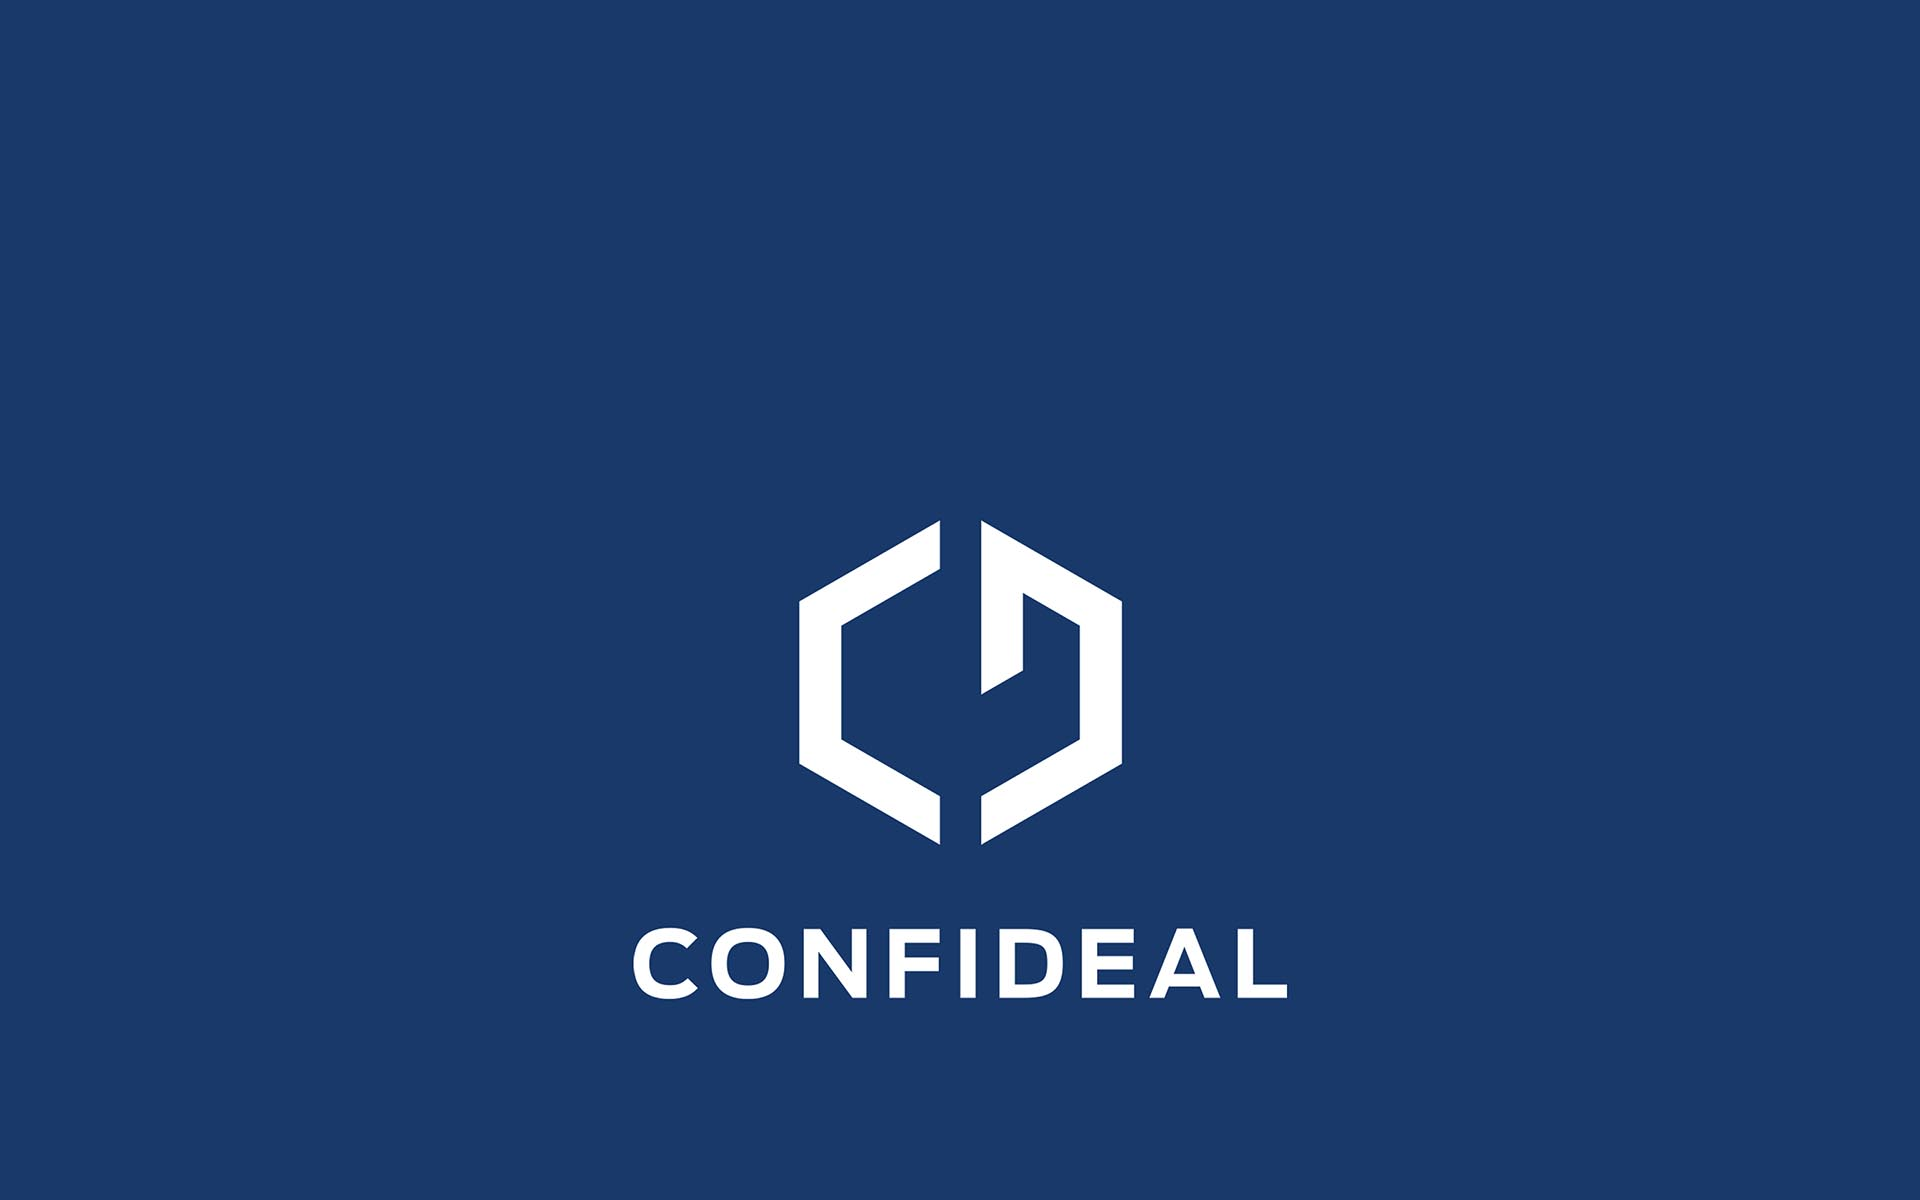 Confideal: MVP, 13 Cooperations with other Companies, 12 External Advisors, 5000 Subscribers-Contributors, Transparency Initiative. 2nd November - ICO Start. Time to Contribute to Success!